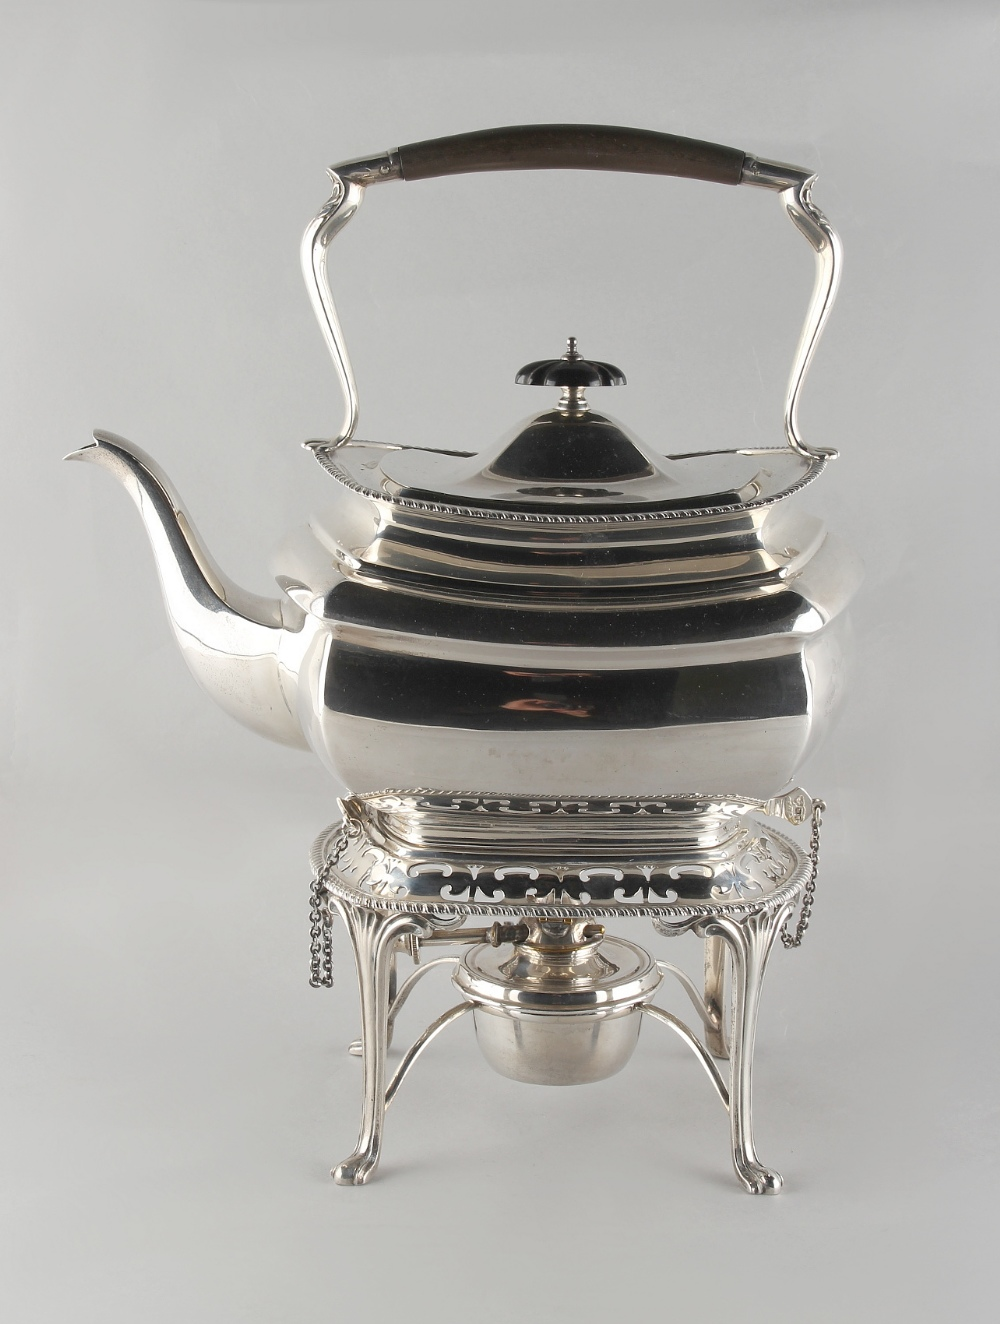 Lot 252 - Property of a deceased estate - a silver kettle on stand with burner, Elkington & Co., Birmingham